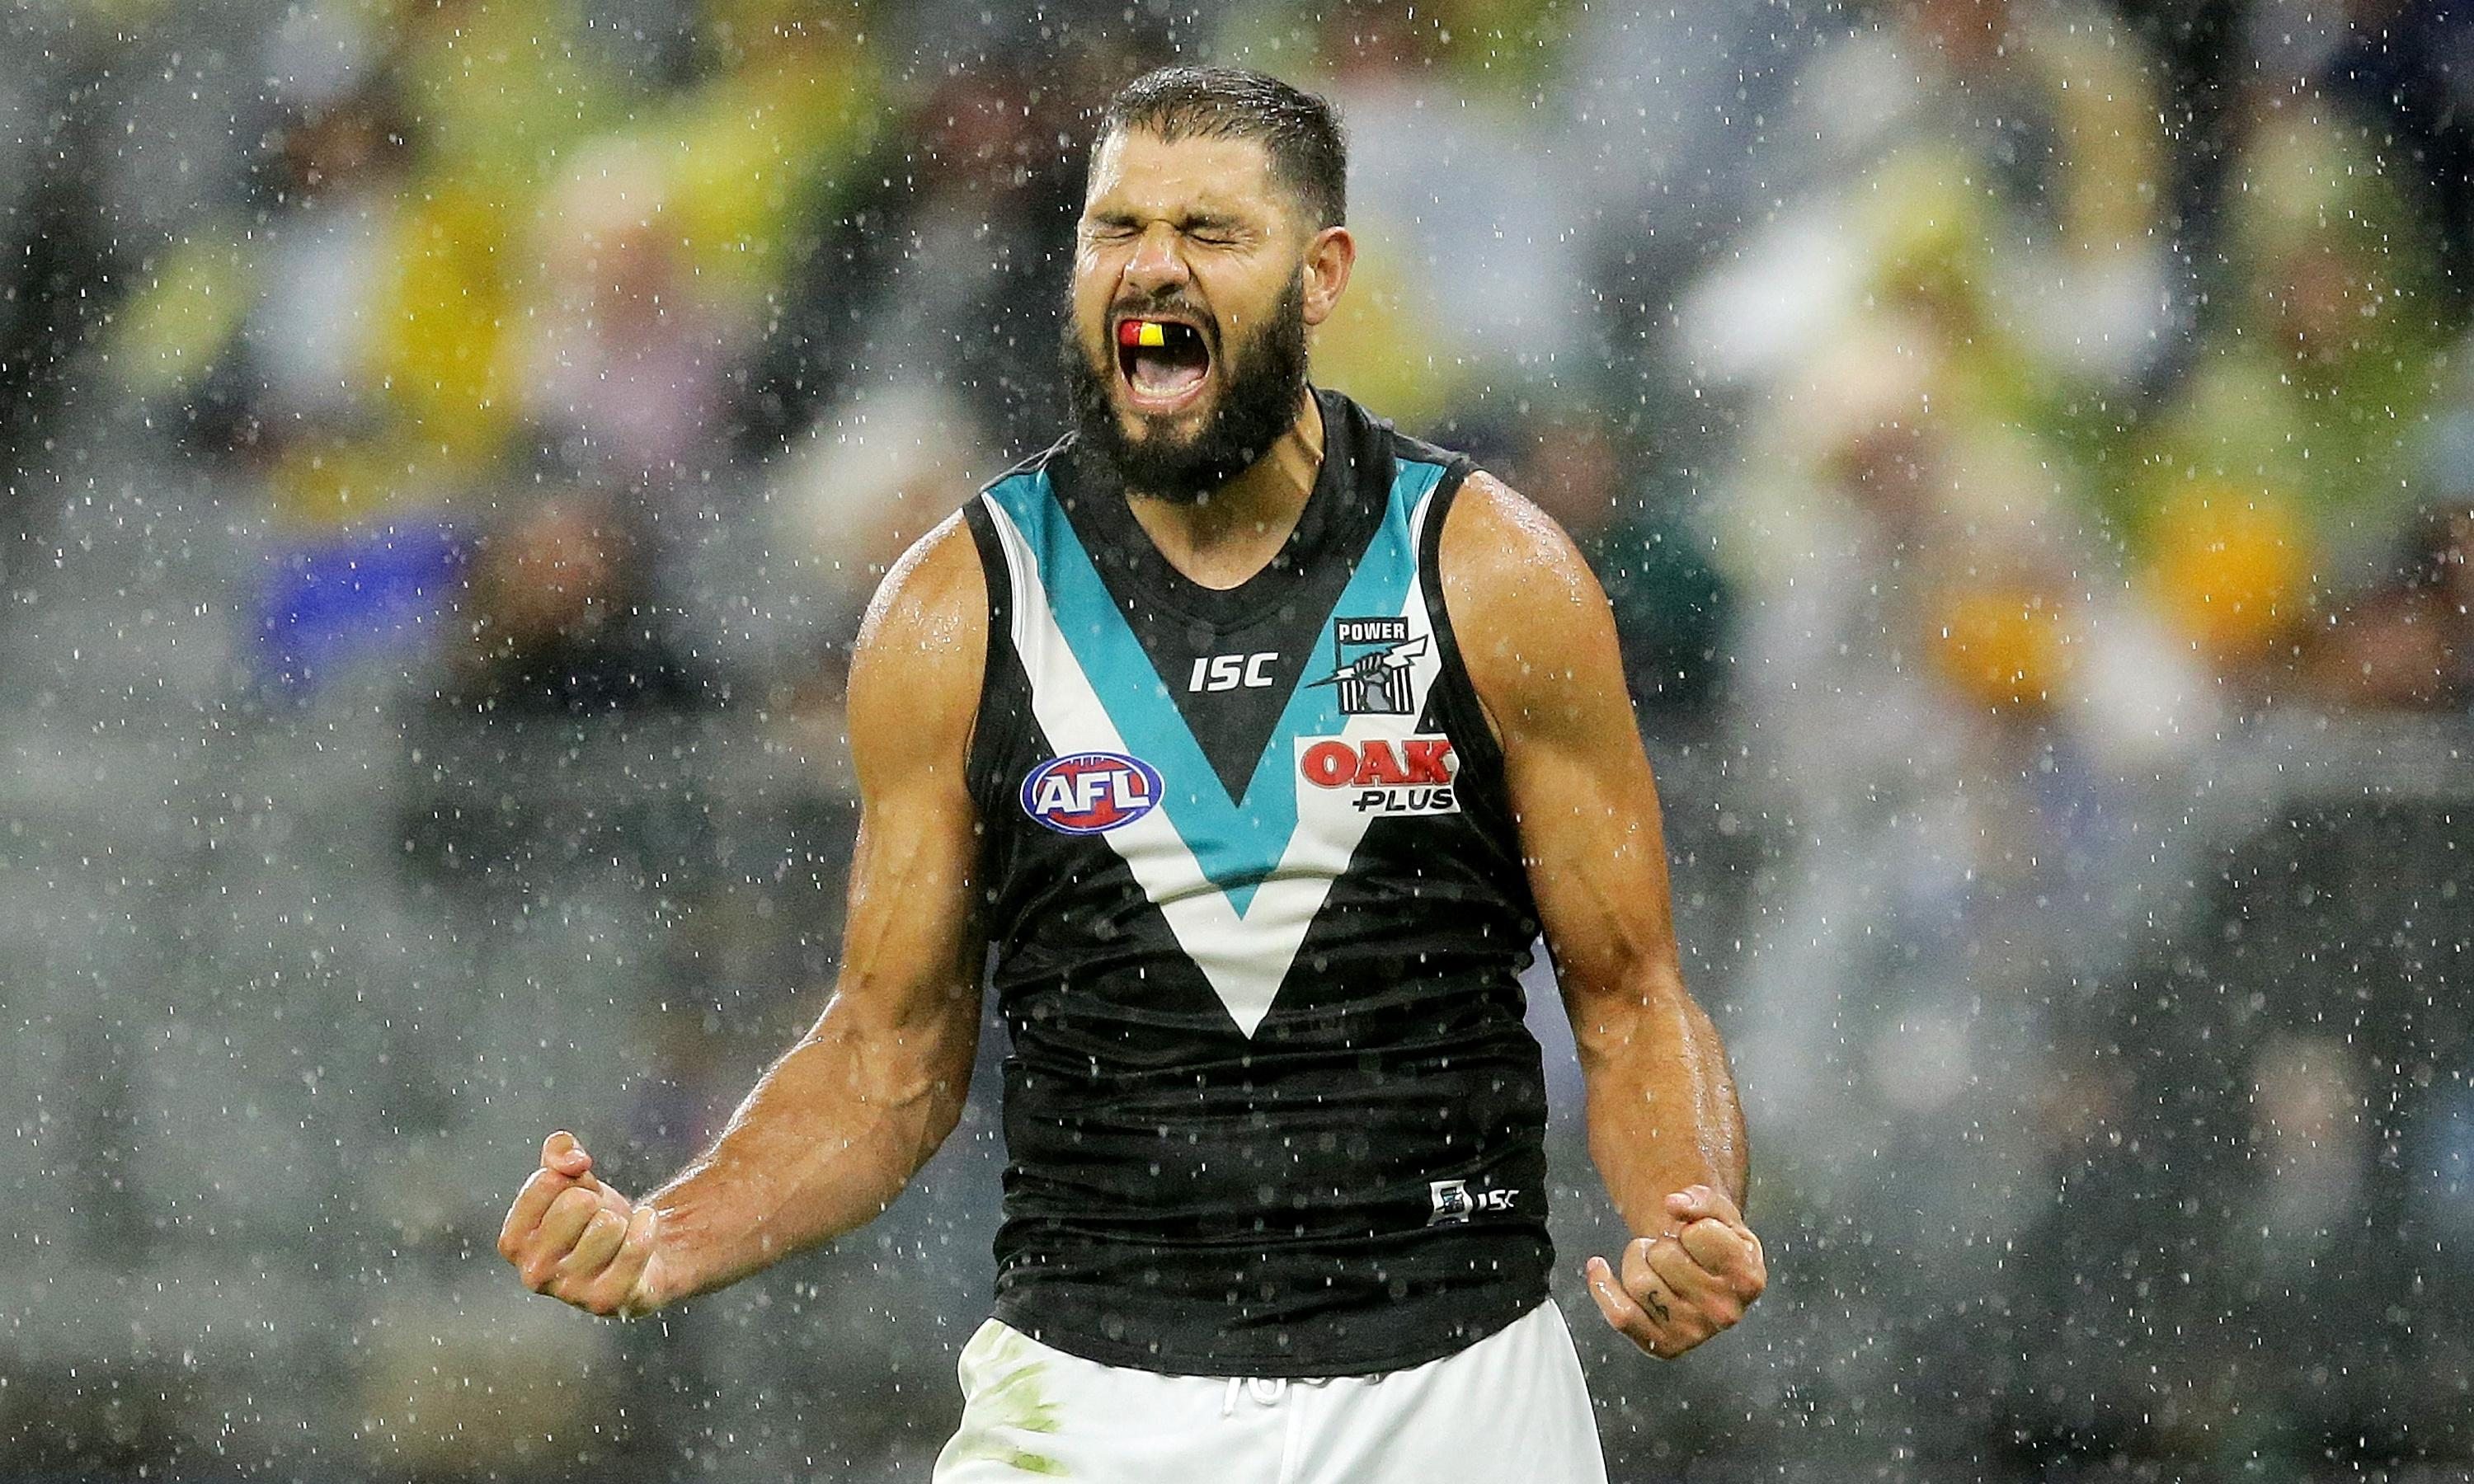 Port Adelaide's Paddy Ryder speaks out after racist abuse